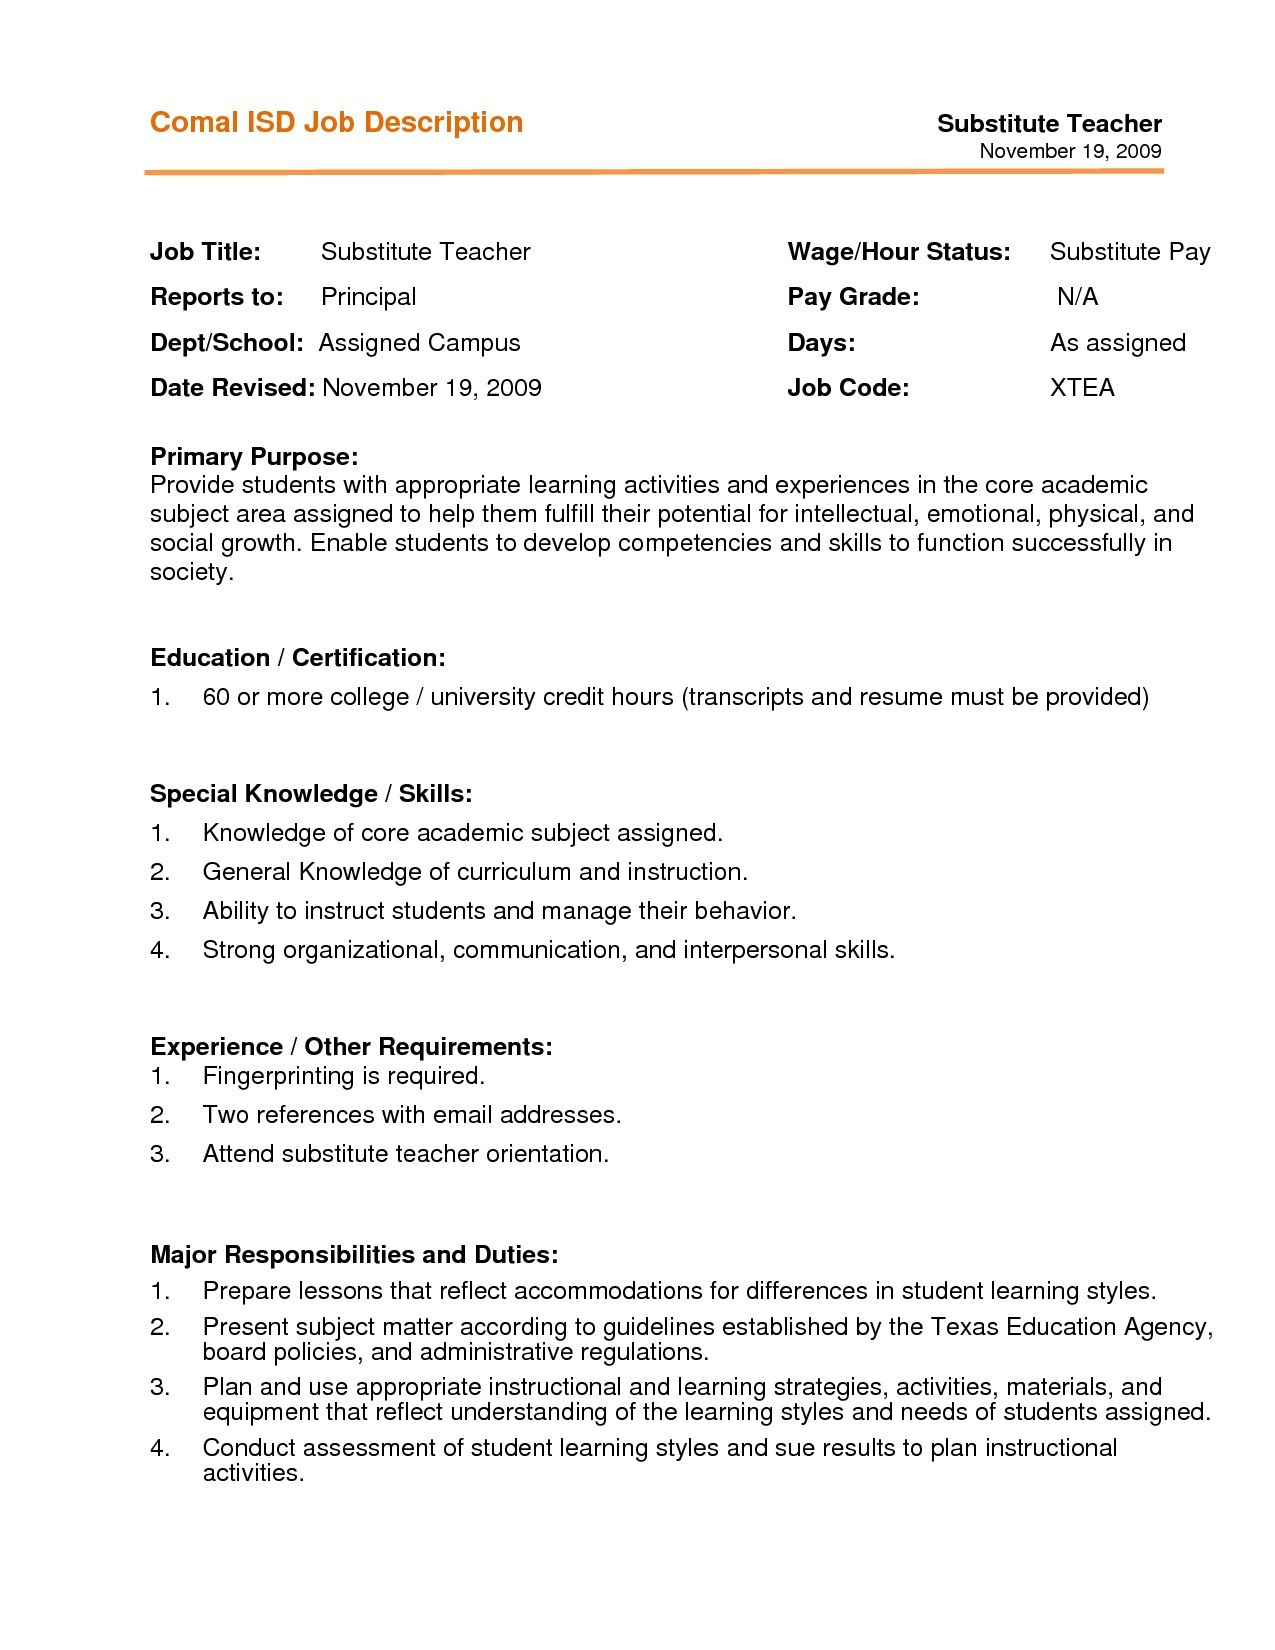 How To Type A Resume Example Of Resume Personal Information Beautiful Stock How To Type Resume Best Sample Personal Information In Resume Of Example Of Resume Personal Information how to type a resume|wikiresume.com